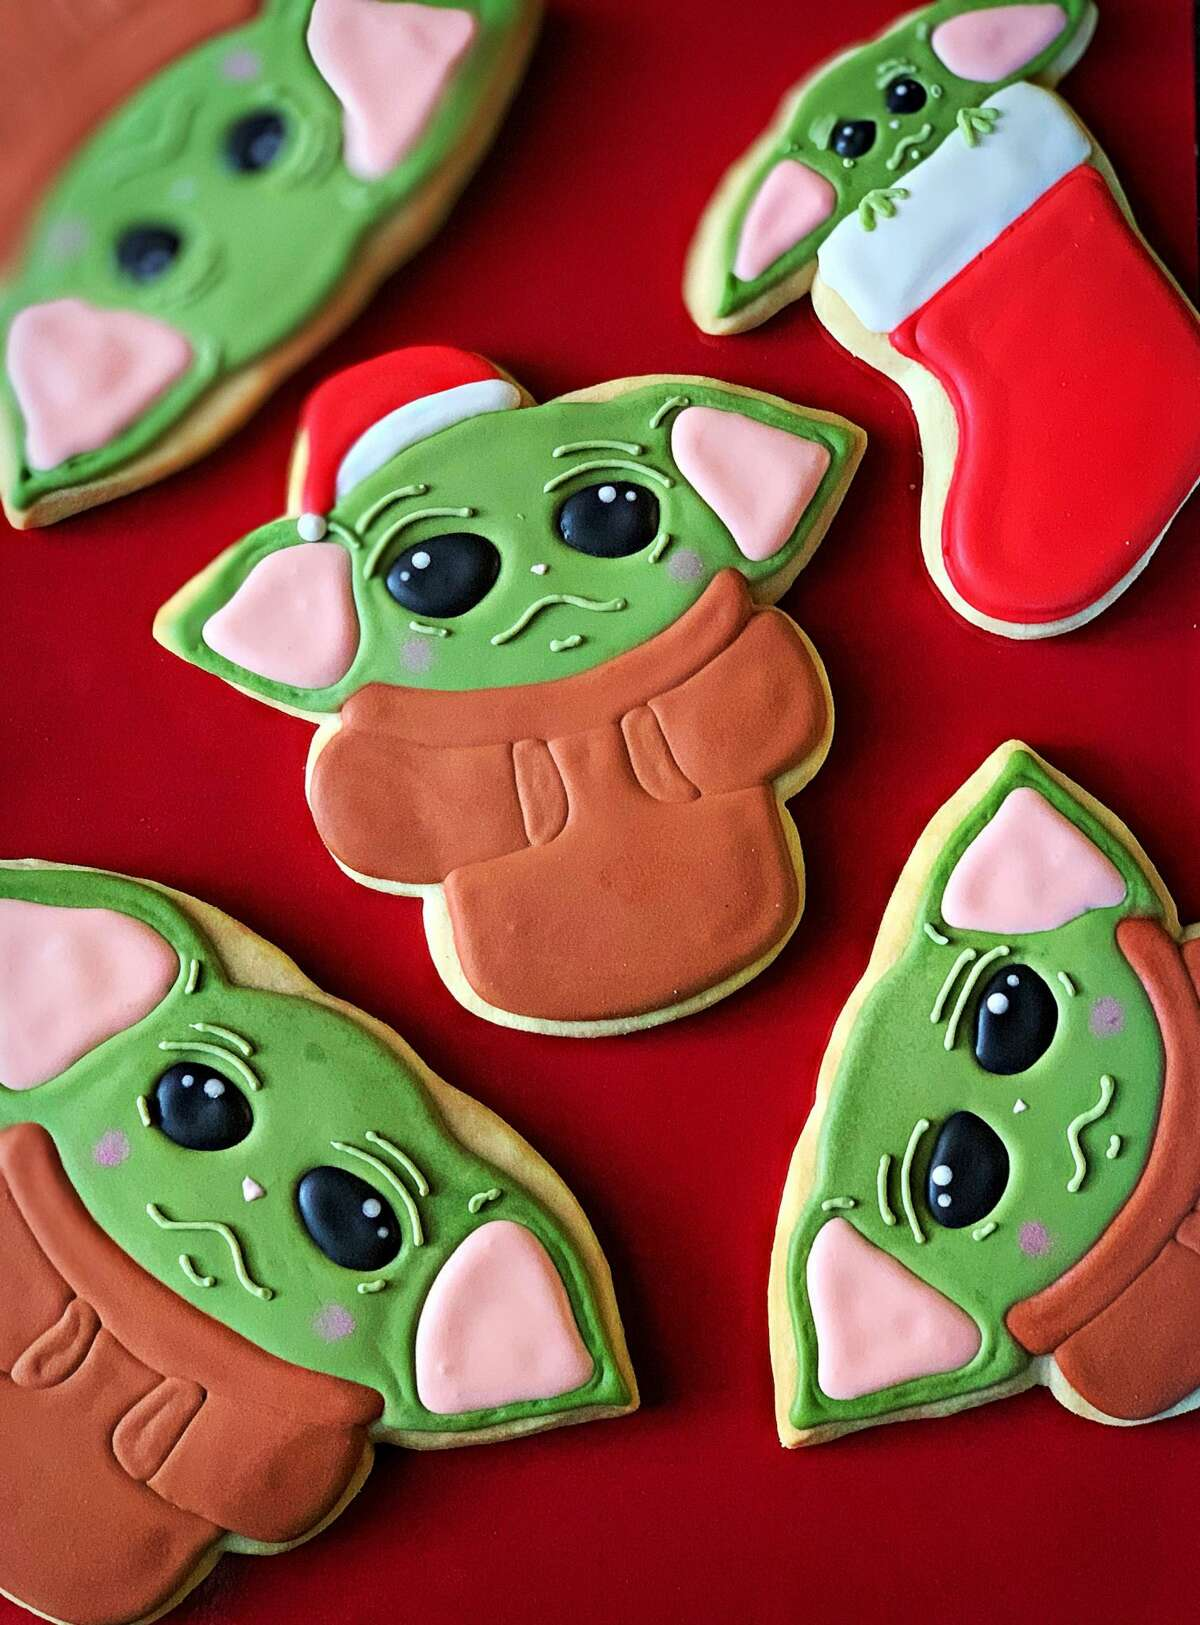 The Bread Box is selling Baby Yoda cookies celebrating the popularity of the new Star Wars character.